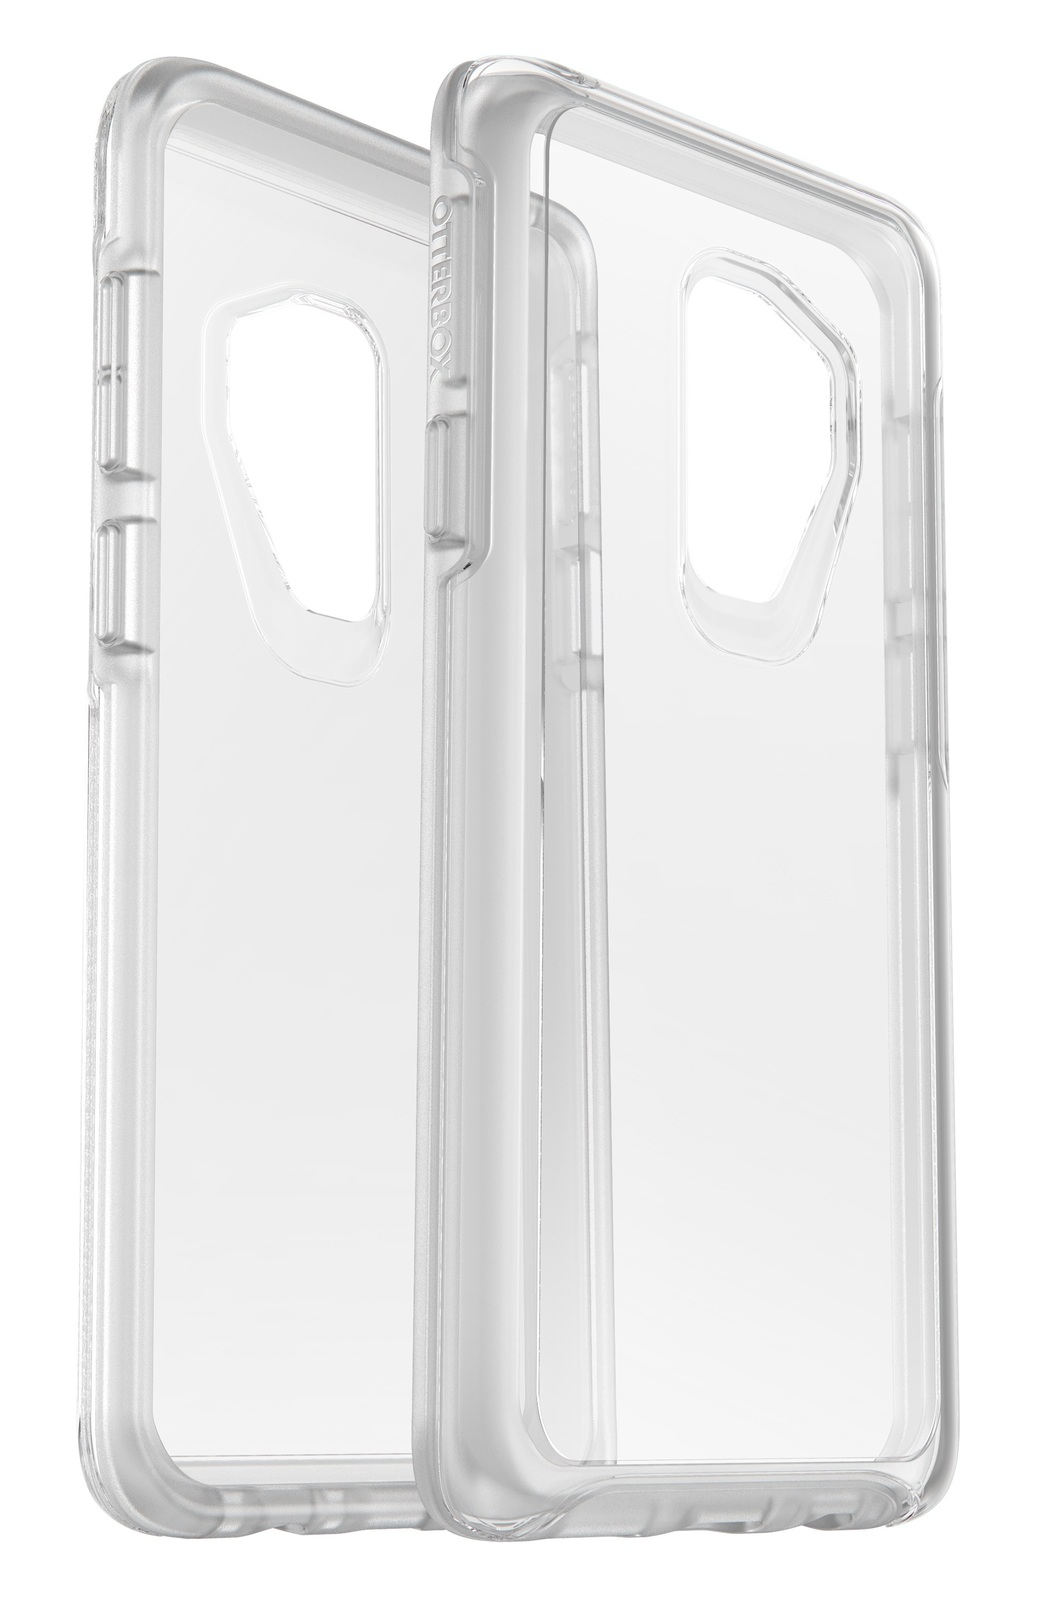 Otterbox Symmetry Clear Case For Samsung Gs9 At Mighty Ape Nz My Iphone 6 6s Black Image